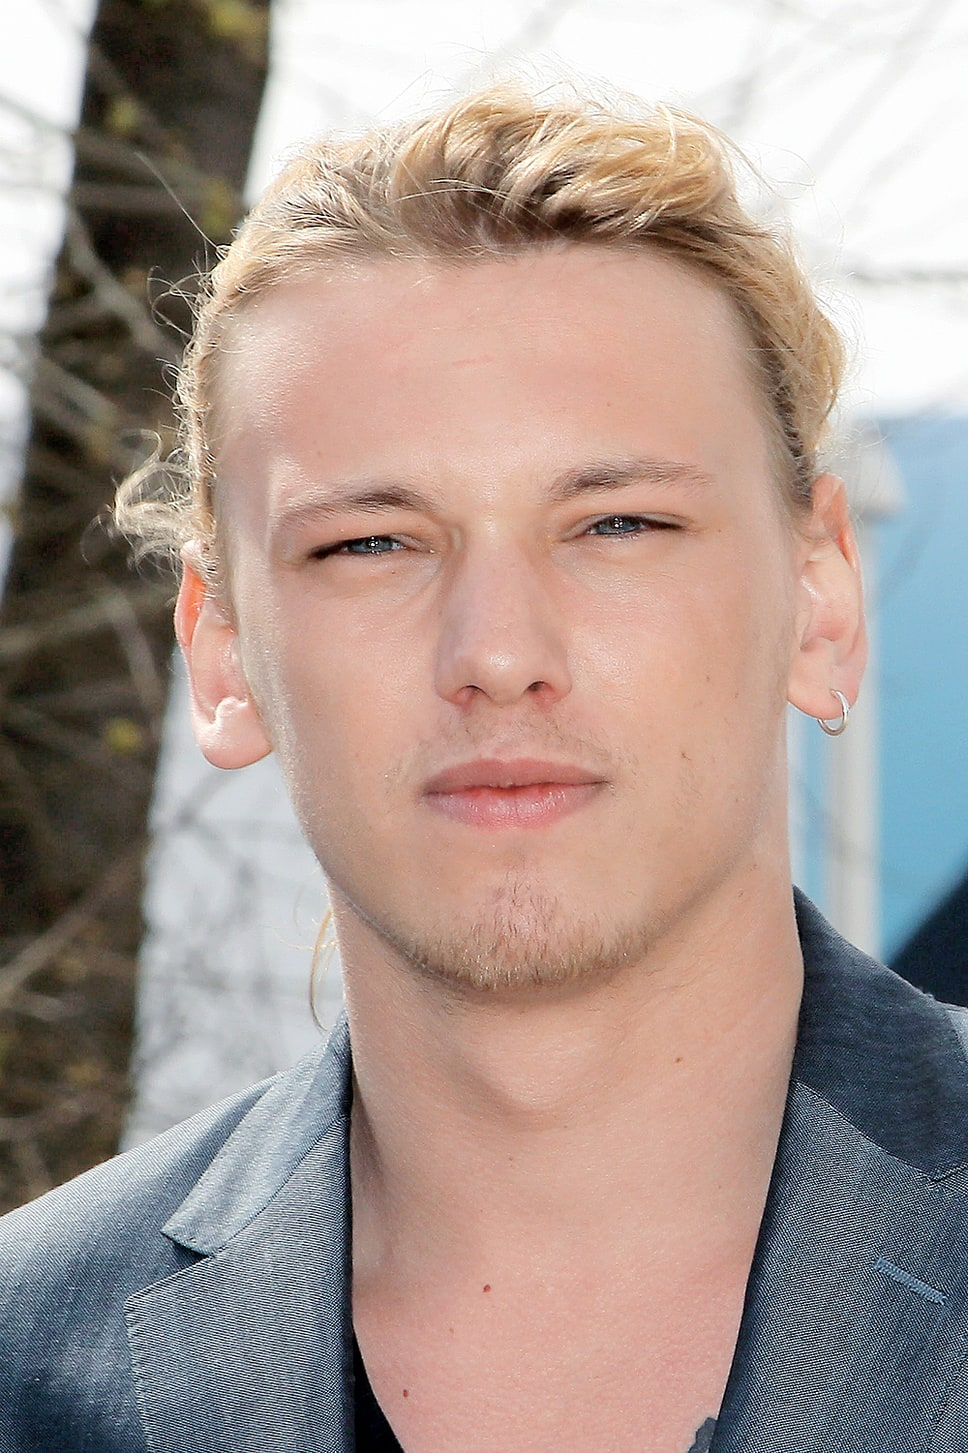 Remarkable, rather jamie campbell bower was error